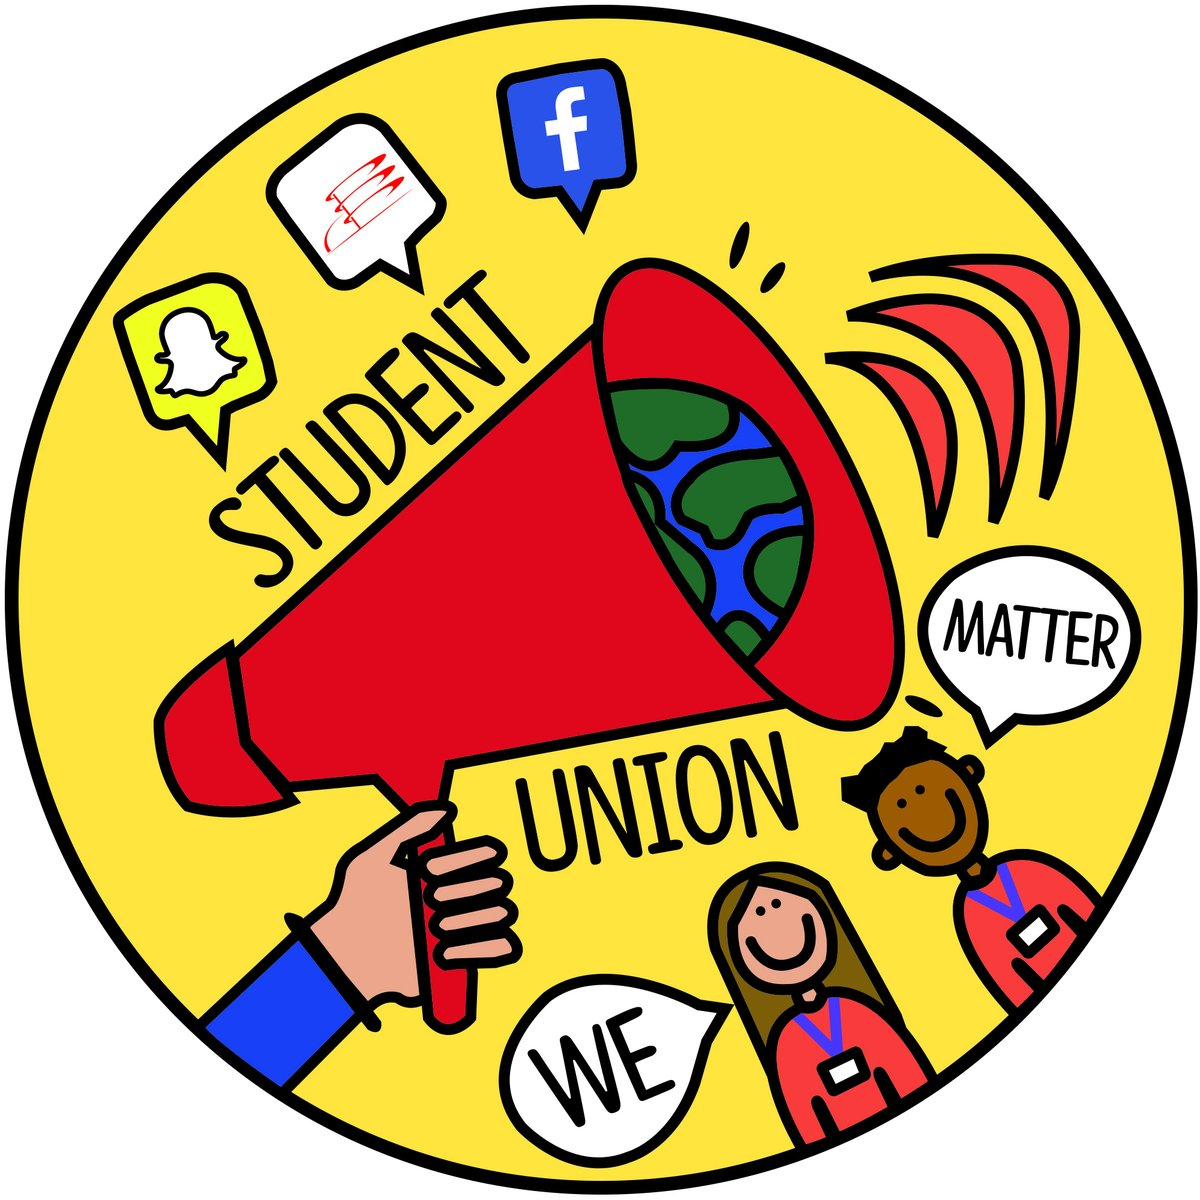 The #StudentUnion (SU) is made up of a group of students whose role it is to be the voice of the student body (all students). They attend meetings throughout the year to discuss any suggestions, changes or improvements potentially needed by the #College #WeAreInternationalpic.twitter.com/9uYloPUhnc